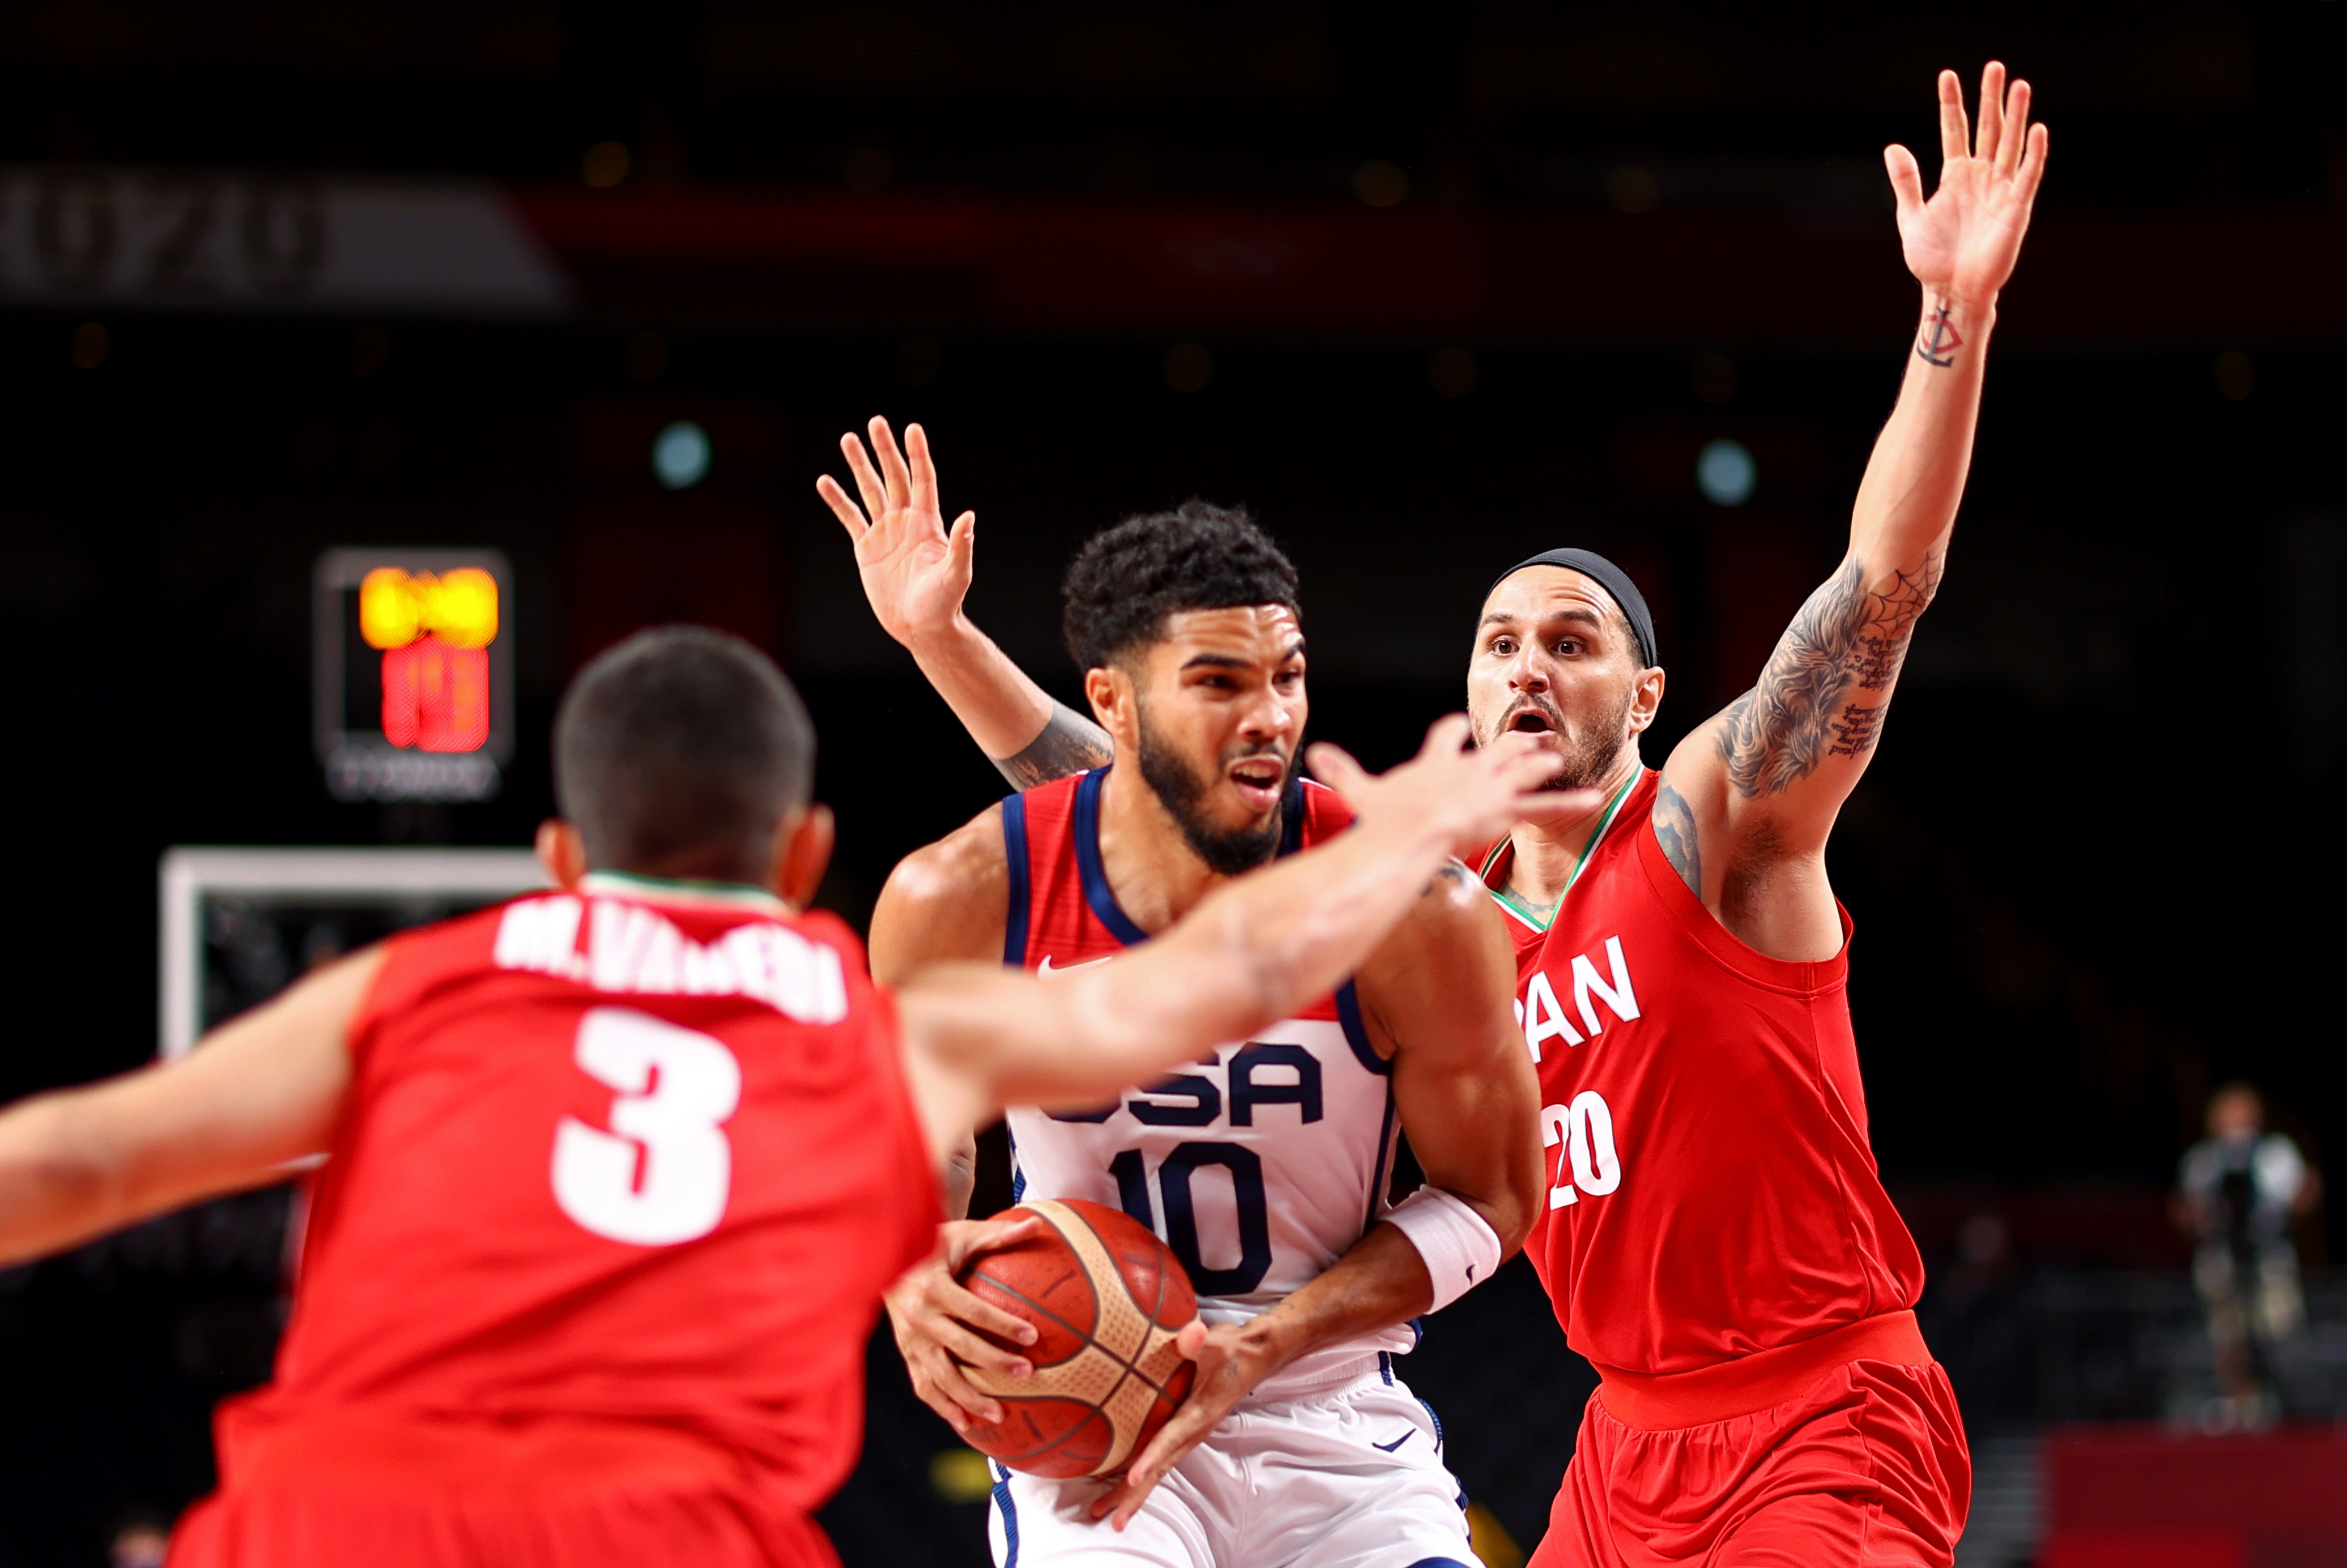 Tokyo 2020 Olympics - Basketball - Men - Group A - United States v Iran - Saitama Super Arena, Saitama, Japan - July 28, 2021. Jayson Tatum of the United States in action with Mike Rostampour of Iran REUTERS/Brian Snyder